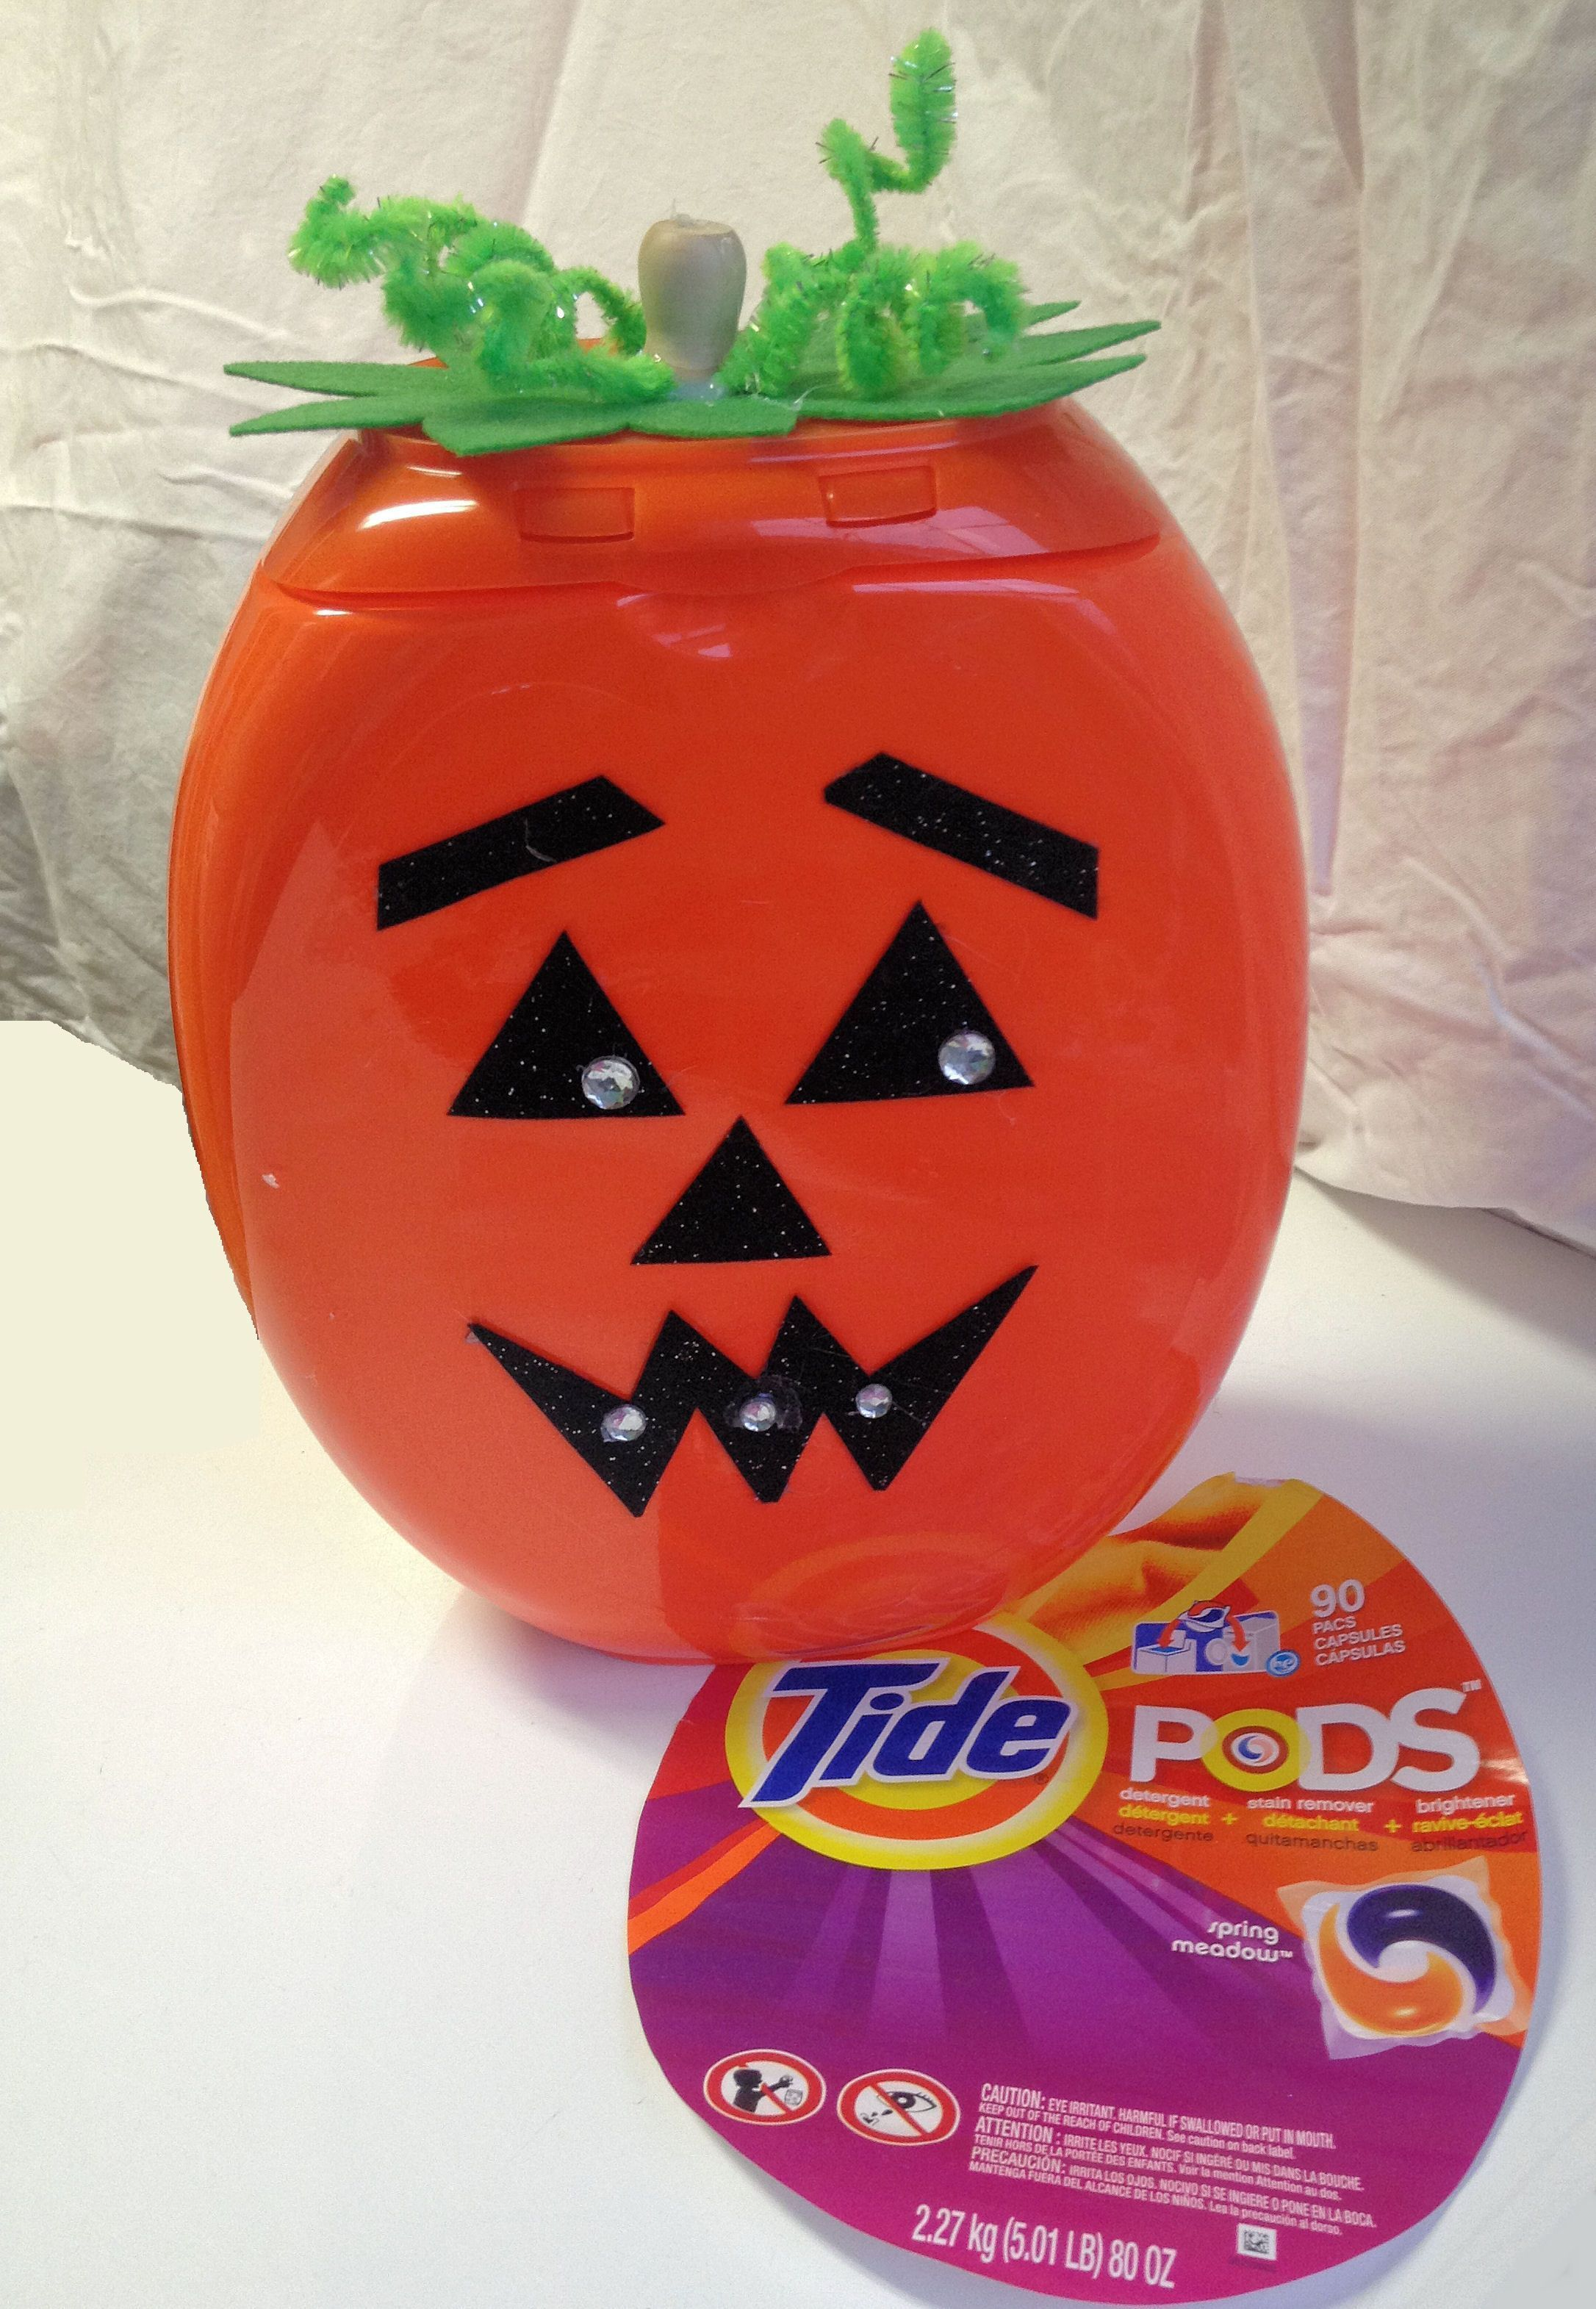 Pin By Cathy Fleury Johnson On Halloween In 2020 Tide Pods Container Holiday Crafts Pumpkin Halloween Decorations